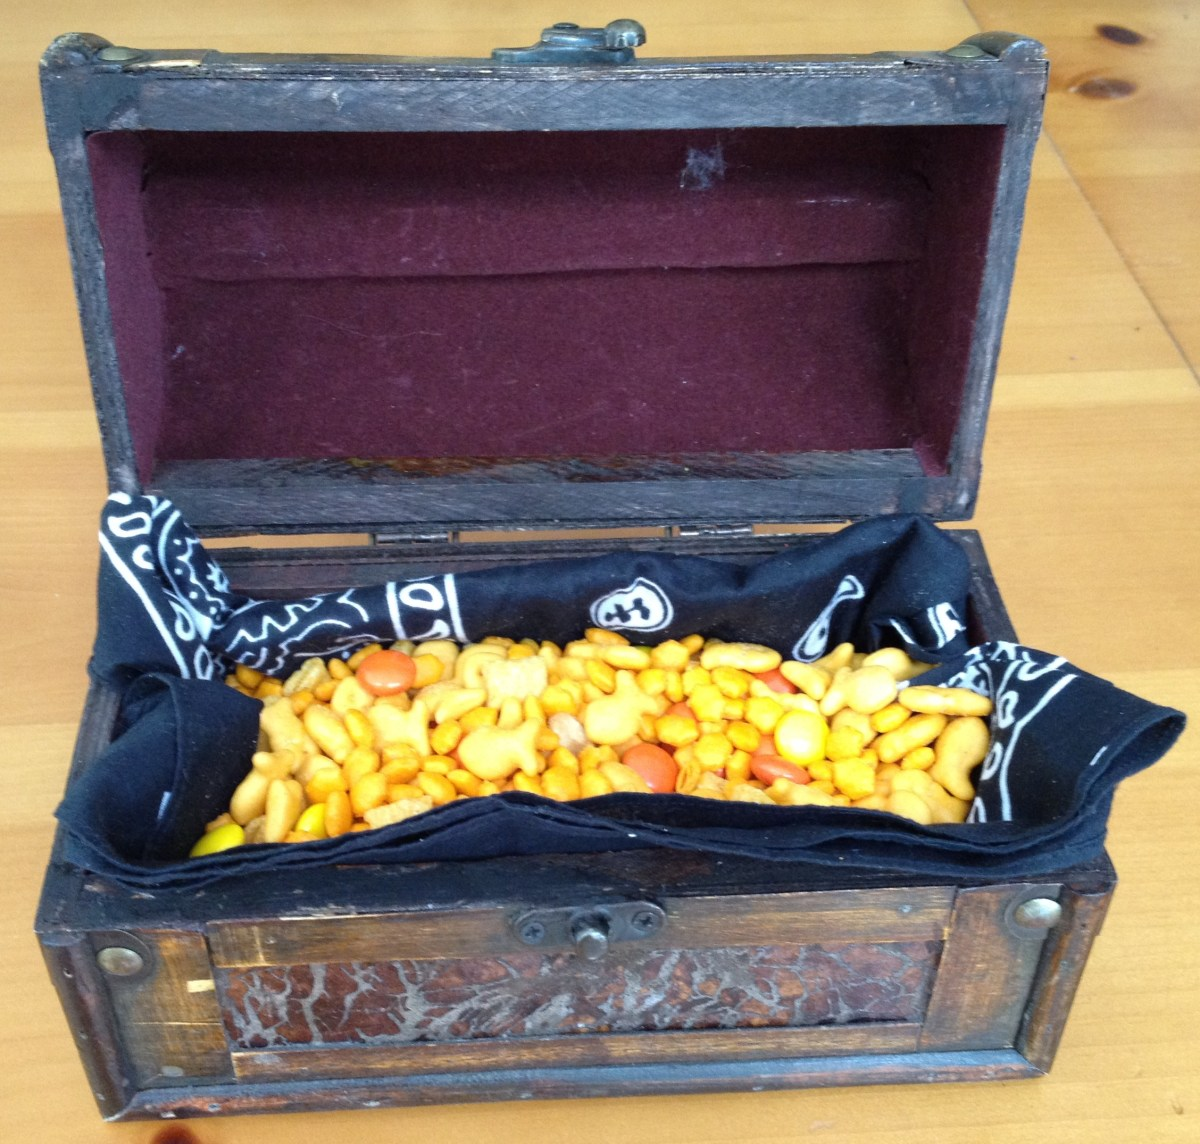 Pirate's Gold Snack Mix